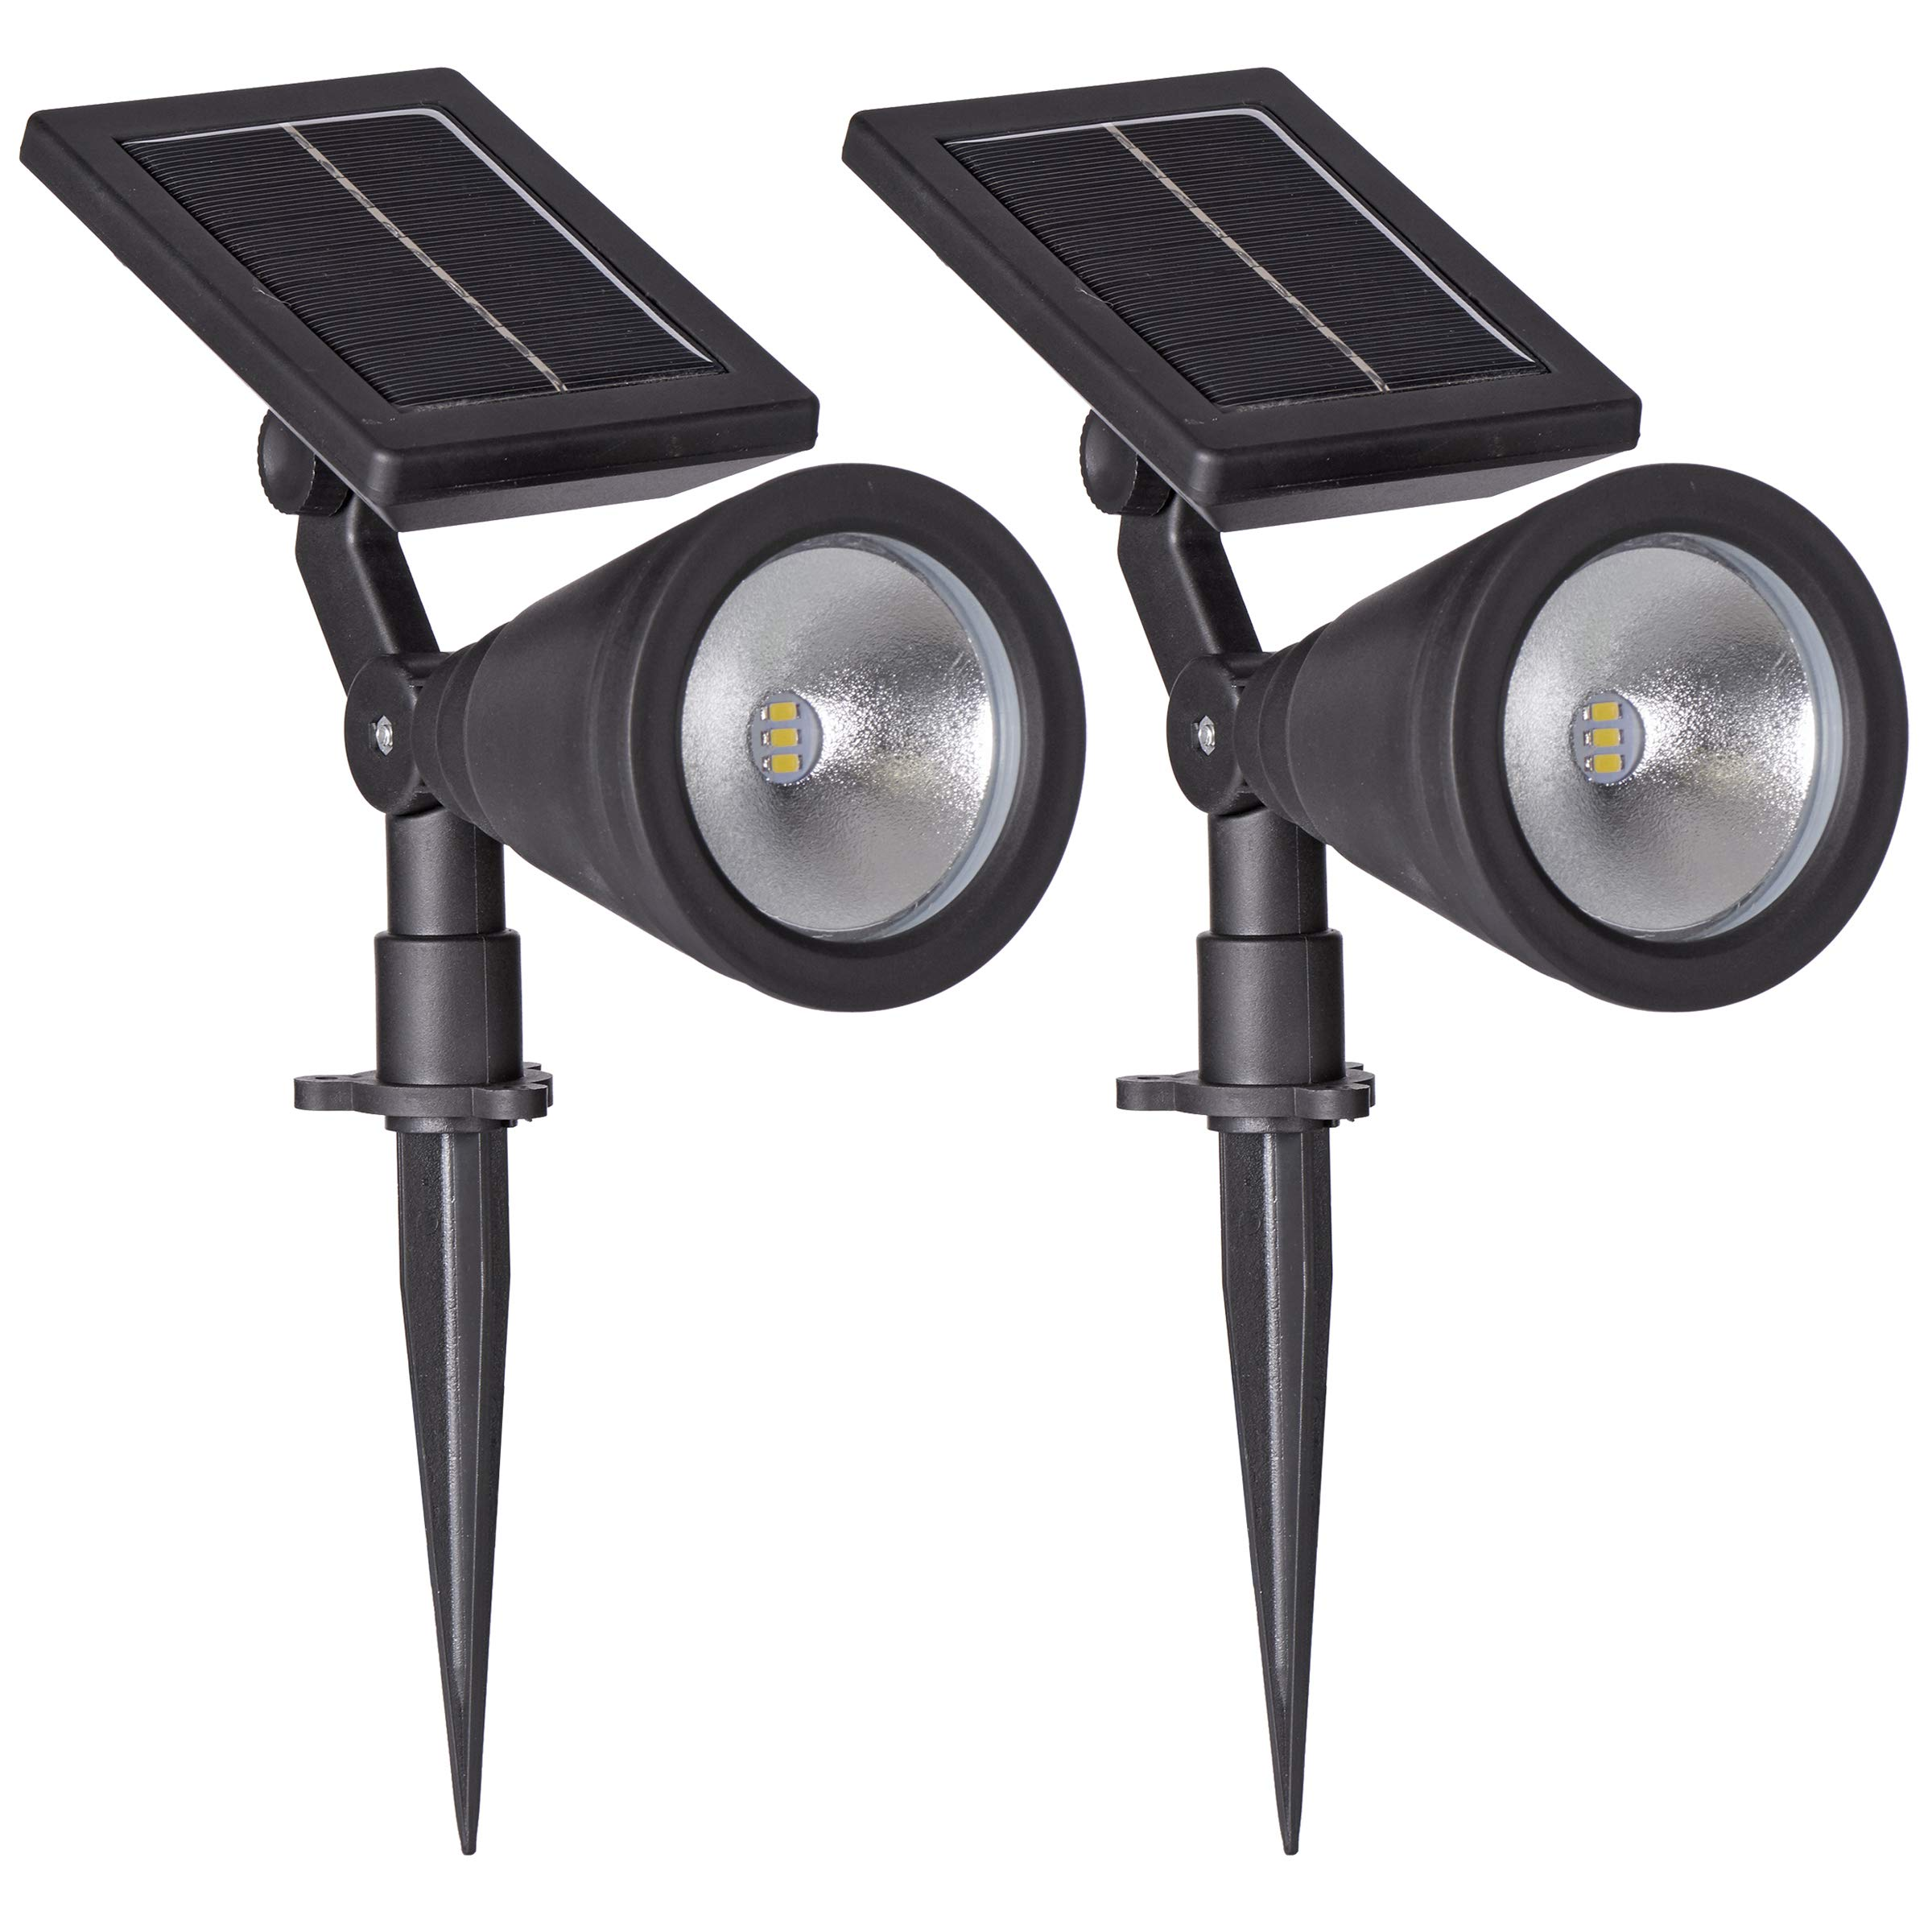 Sterno Home GL40460 Outdoor Solar LED Black Light Kit, Ground or Wall Mountable, Landscape Waterproof Security Lighting with Adjustable Spotlight for Patio, Porch, Deck, Garden, Pool - 2 Pack